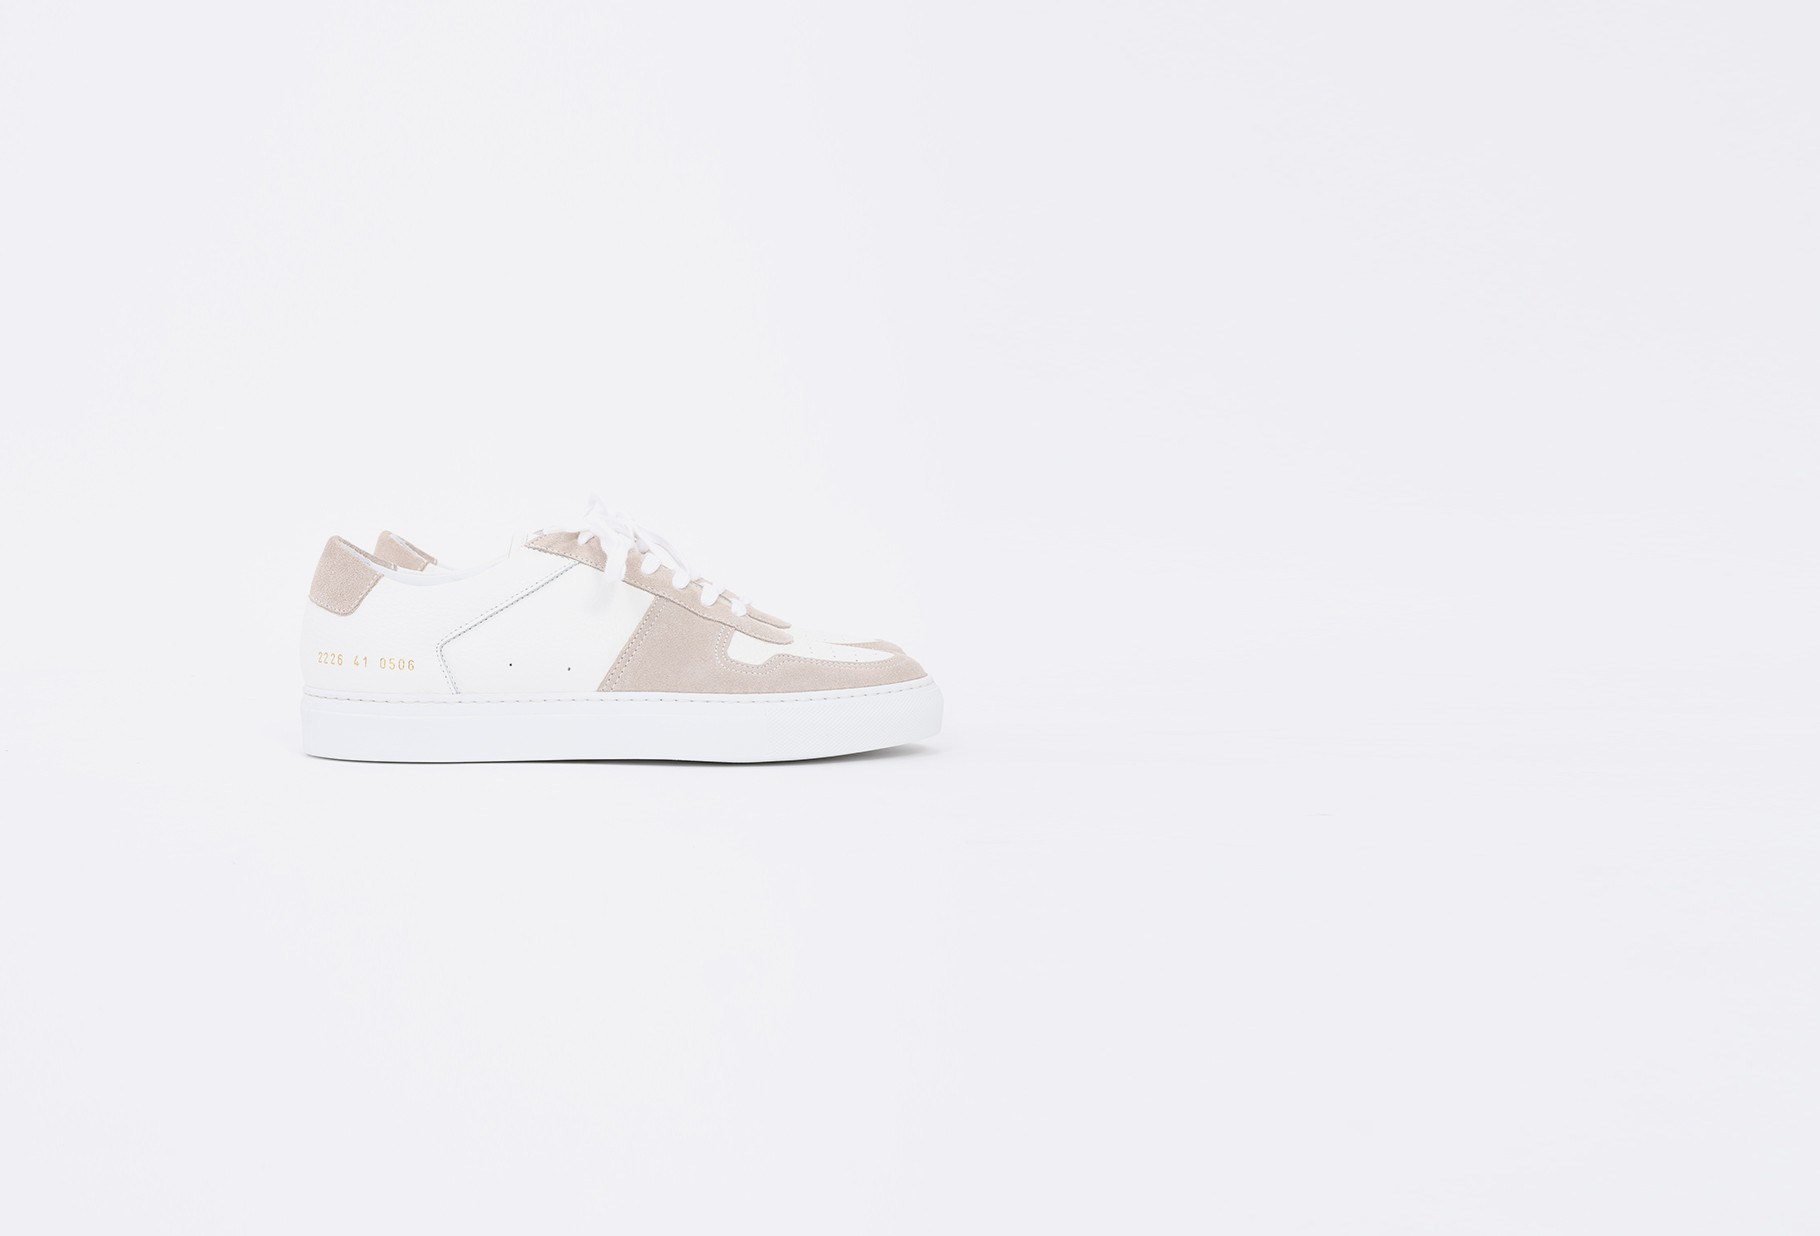 COMMON PROJECTS / Bball low premium 2226 White 0506